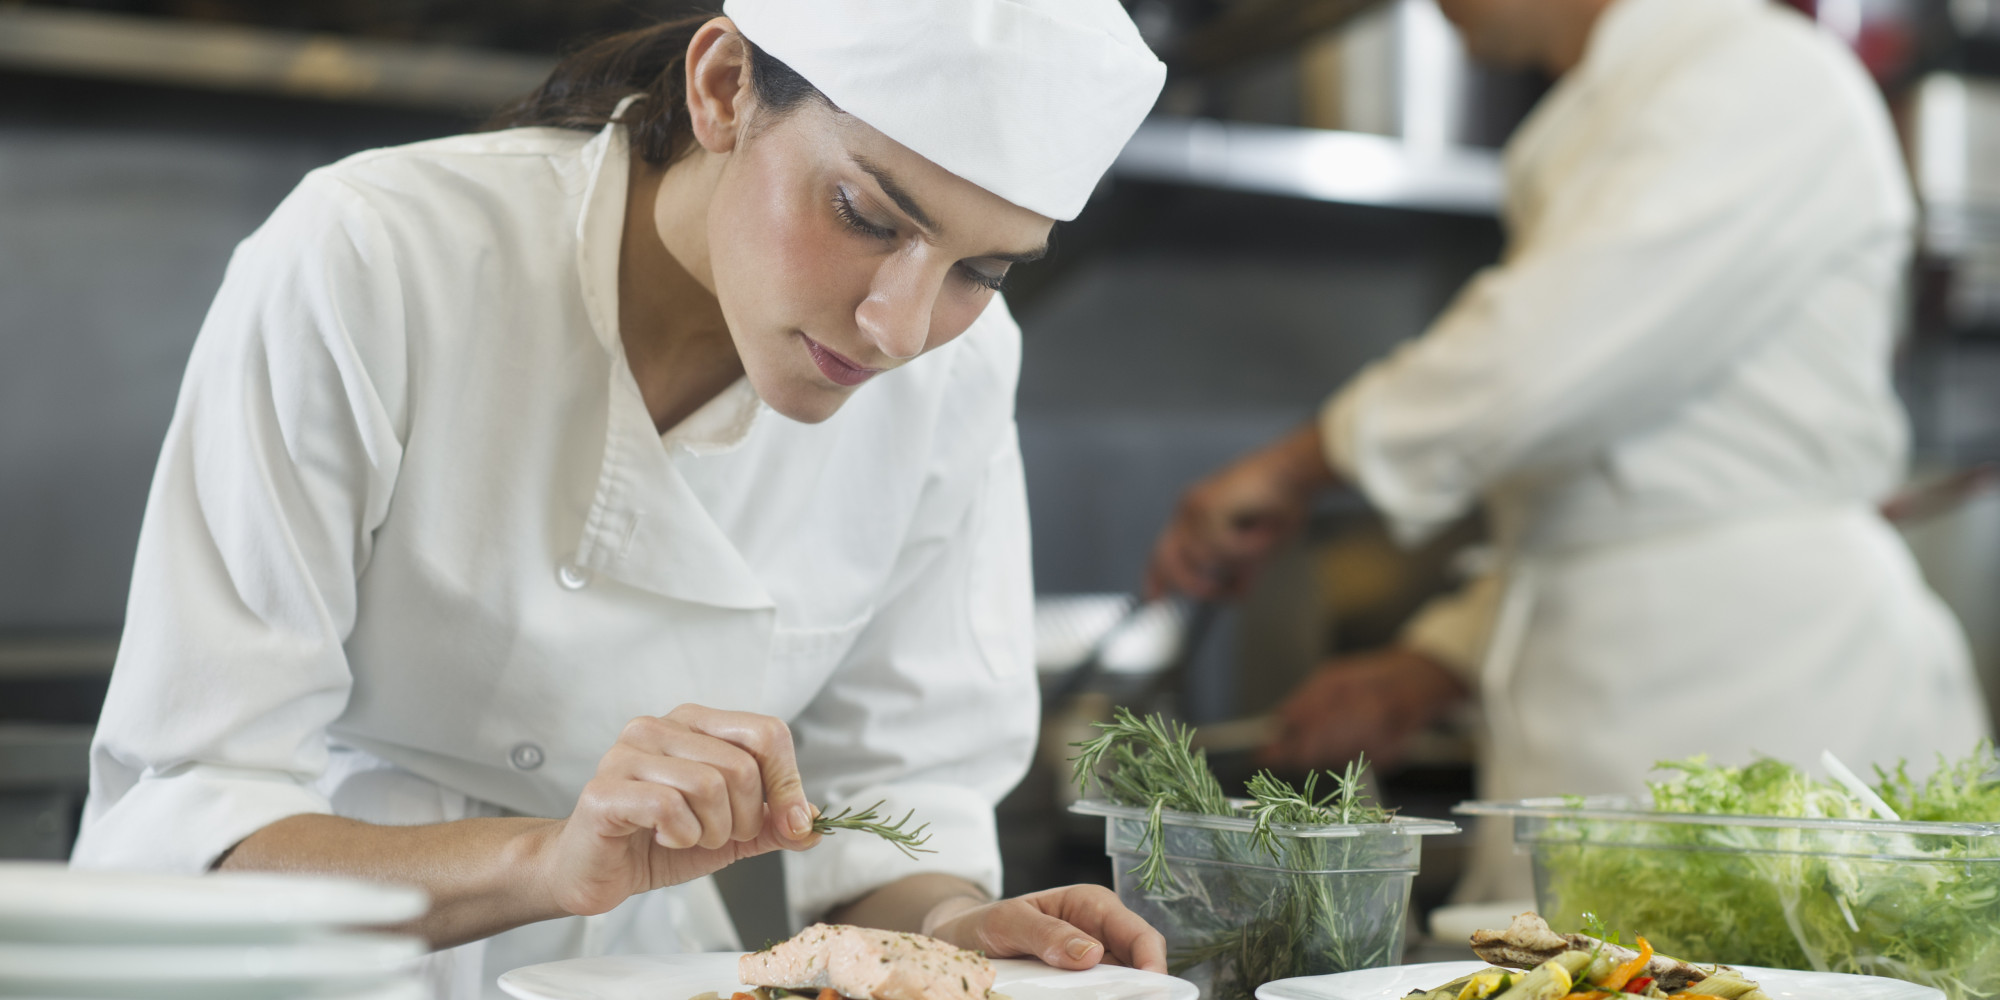 Duties of a Chef